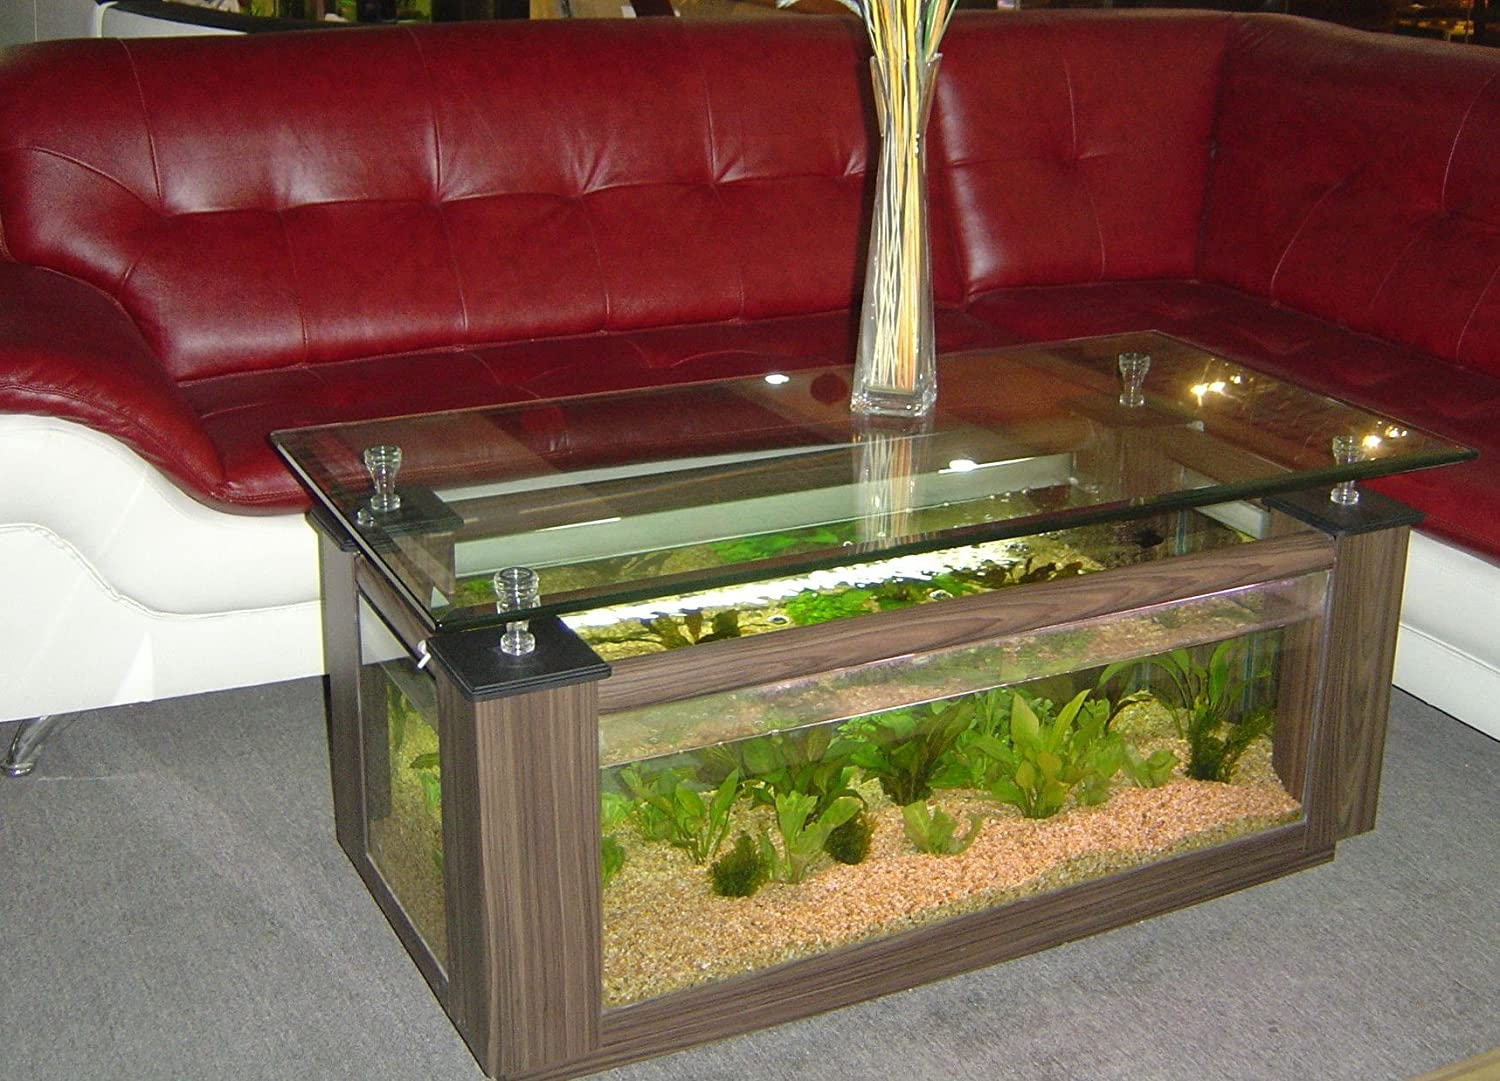 Amazon 48gl rectangular coffee table aquarium with pump amazon 48gl rectangular coffee table aquarium with pump light filter and completely fish ready kitchen dining geotapseo Image collections